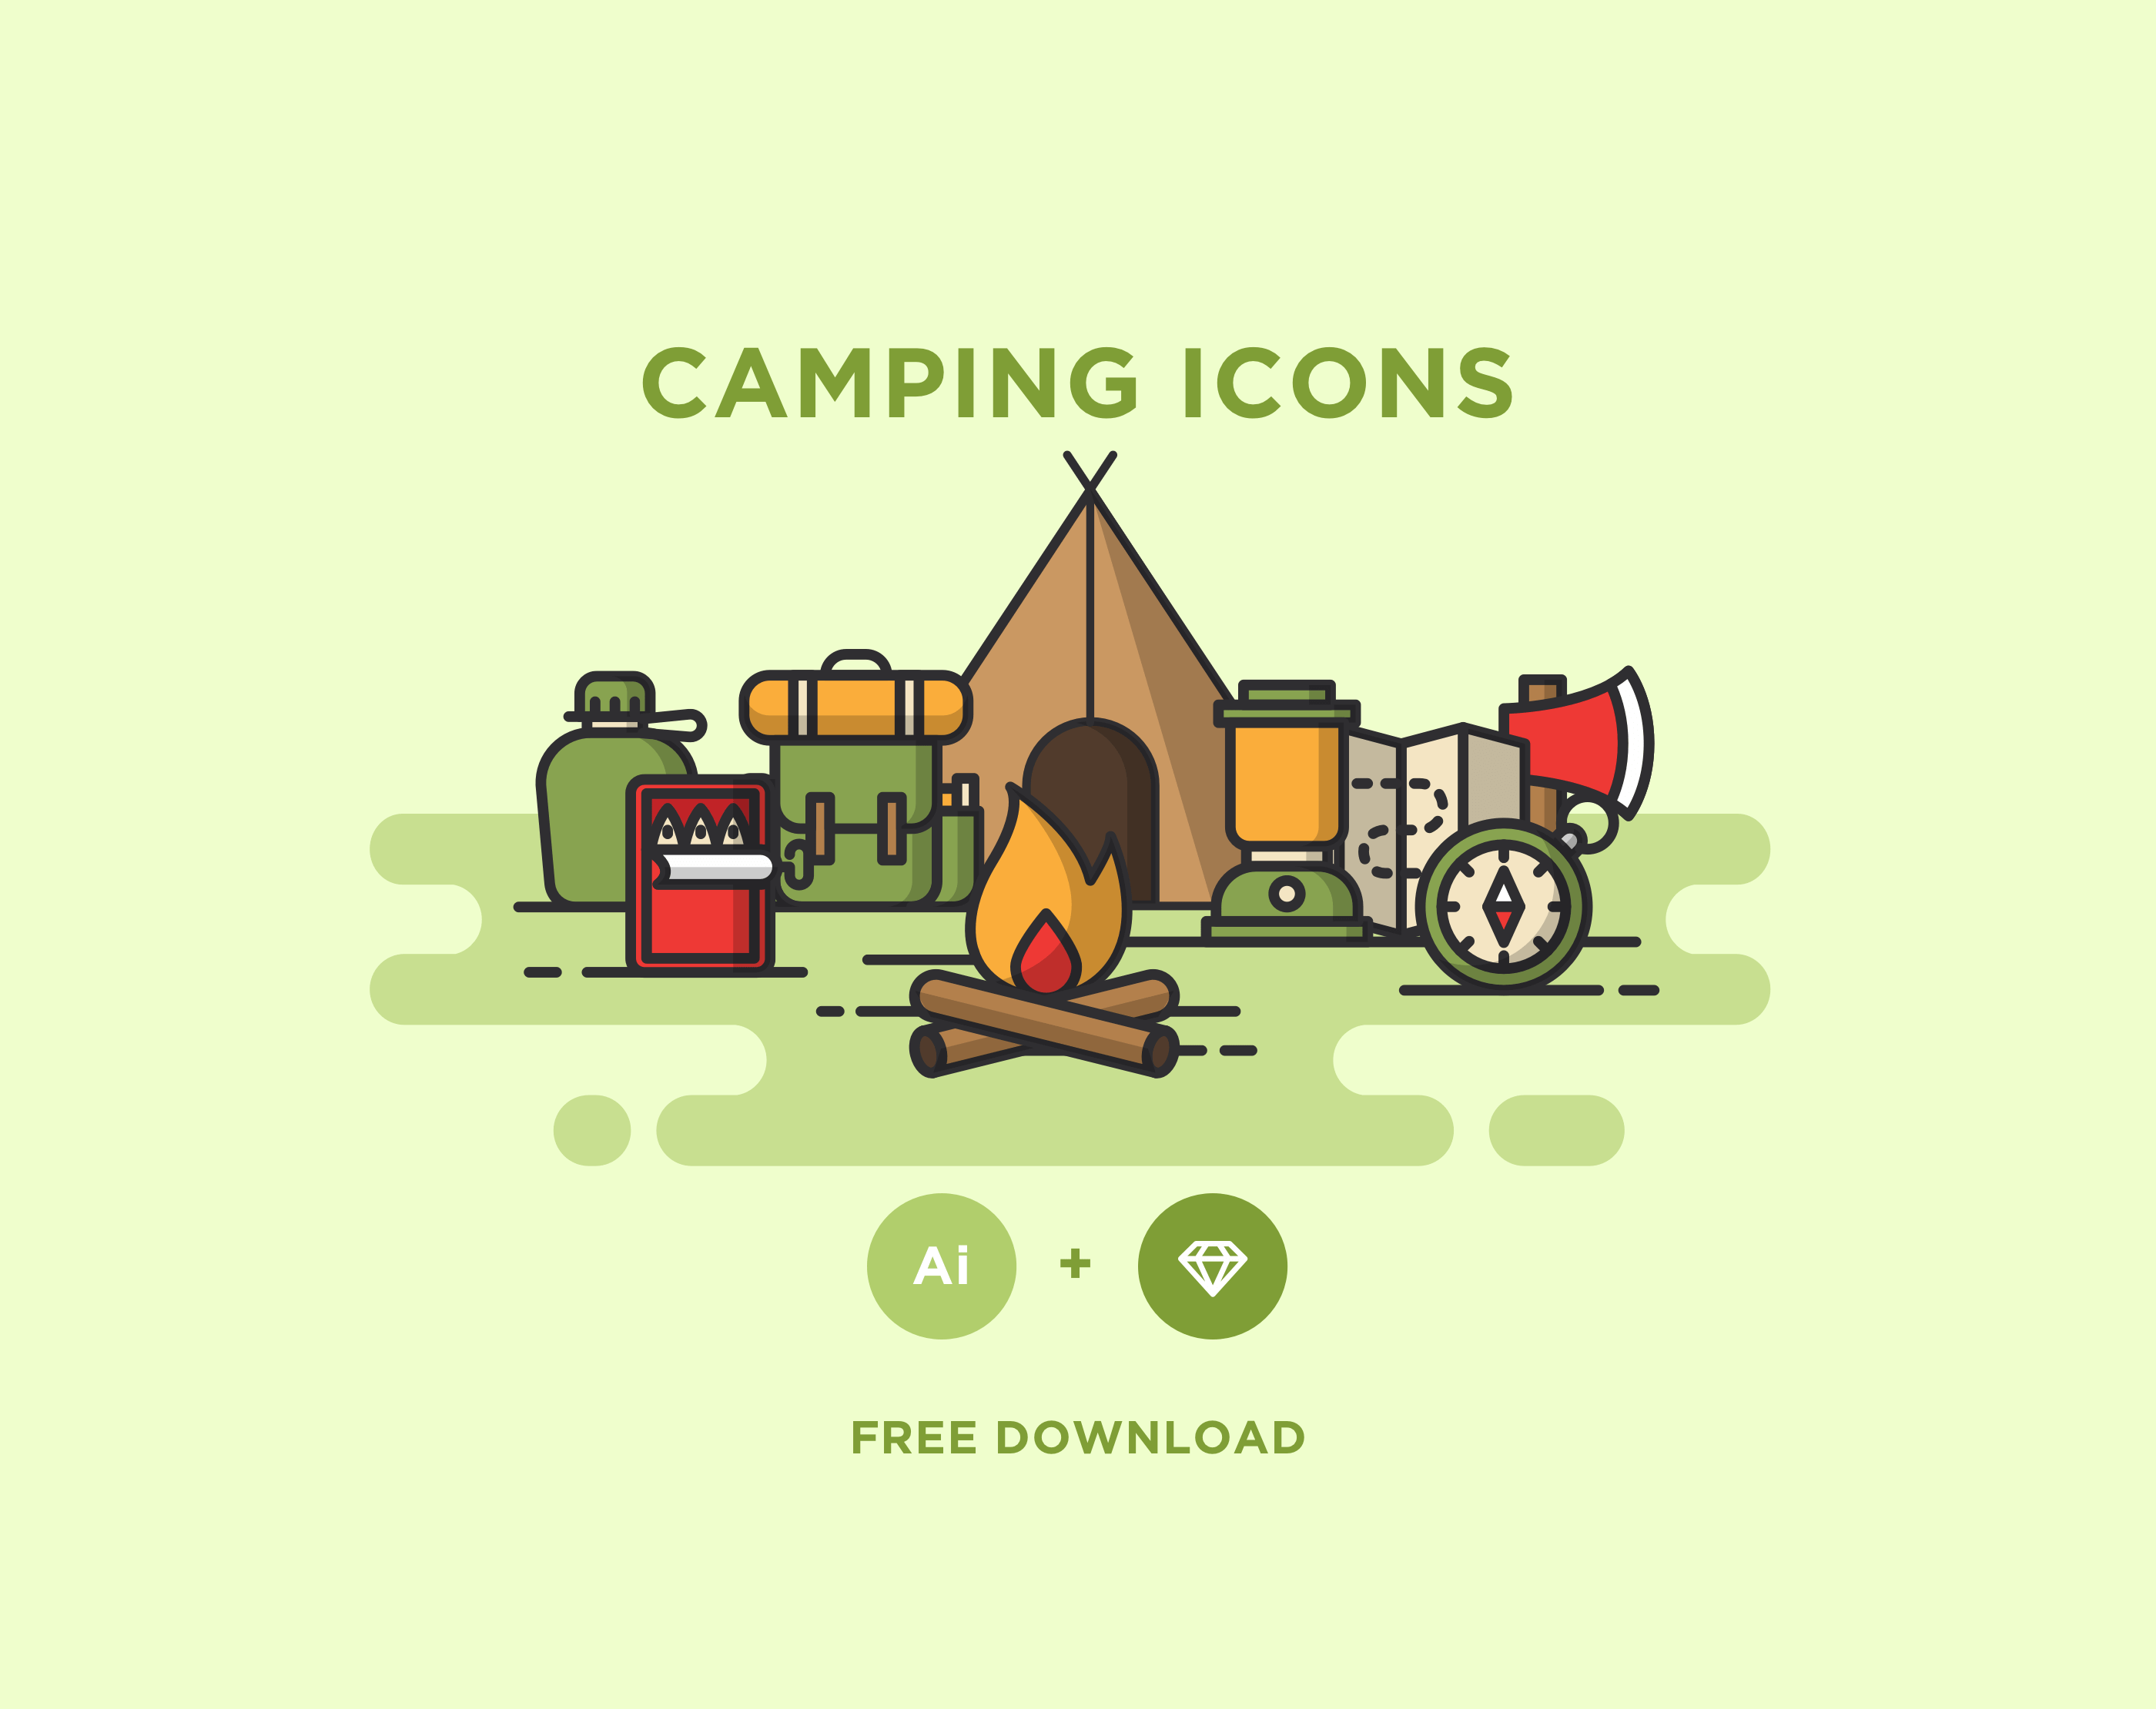 camping-icons